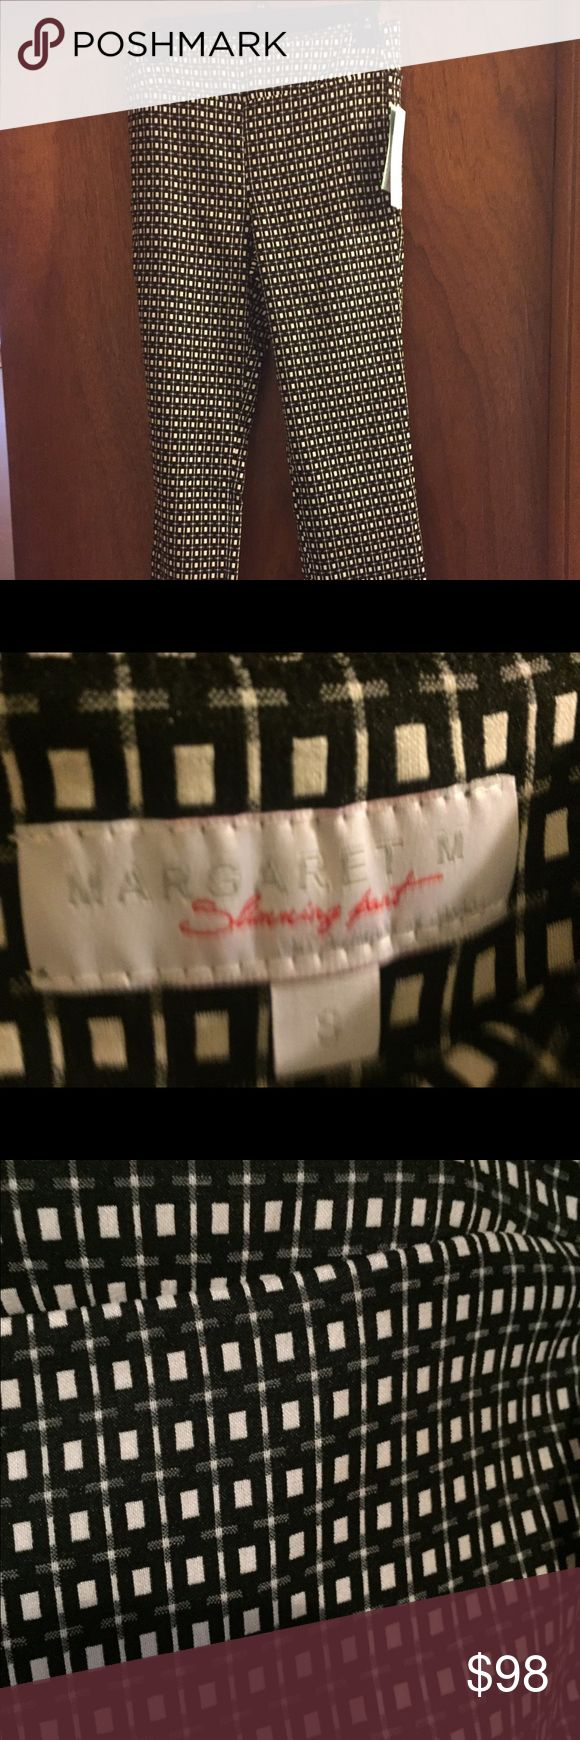 Margaret M Slimming boot pant size small Never worn, still has tags on. Black and white checked pattern. From Stitch Fix. Margaret M Pants